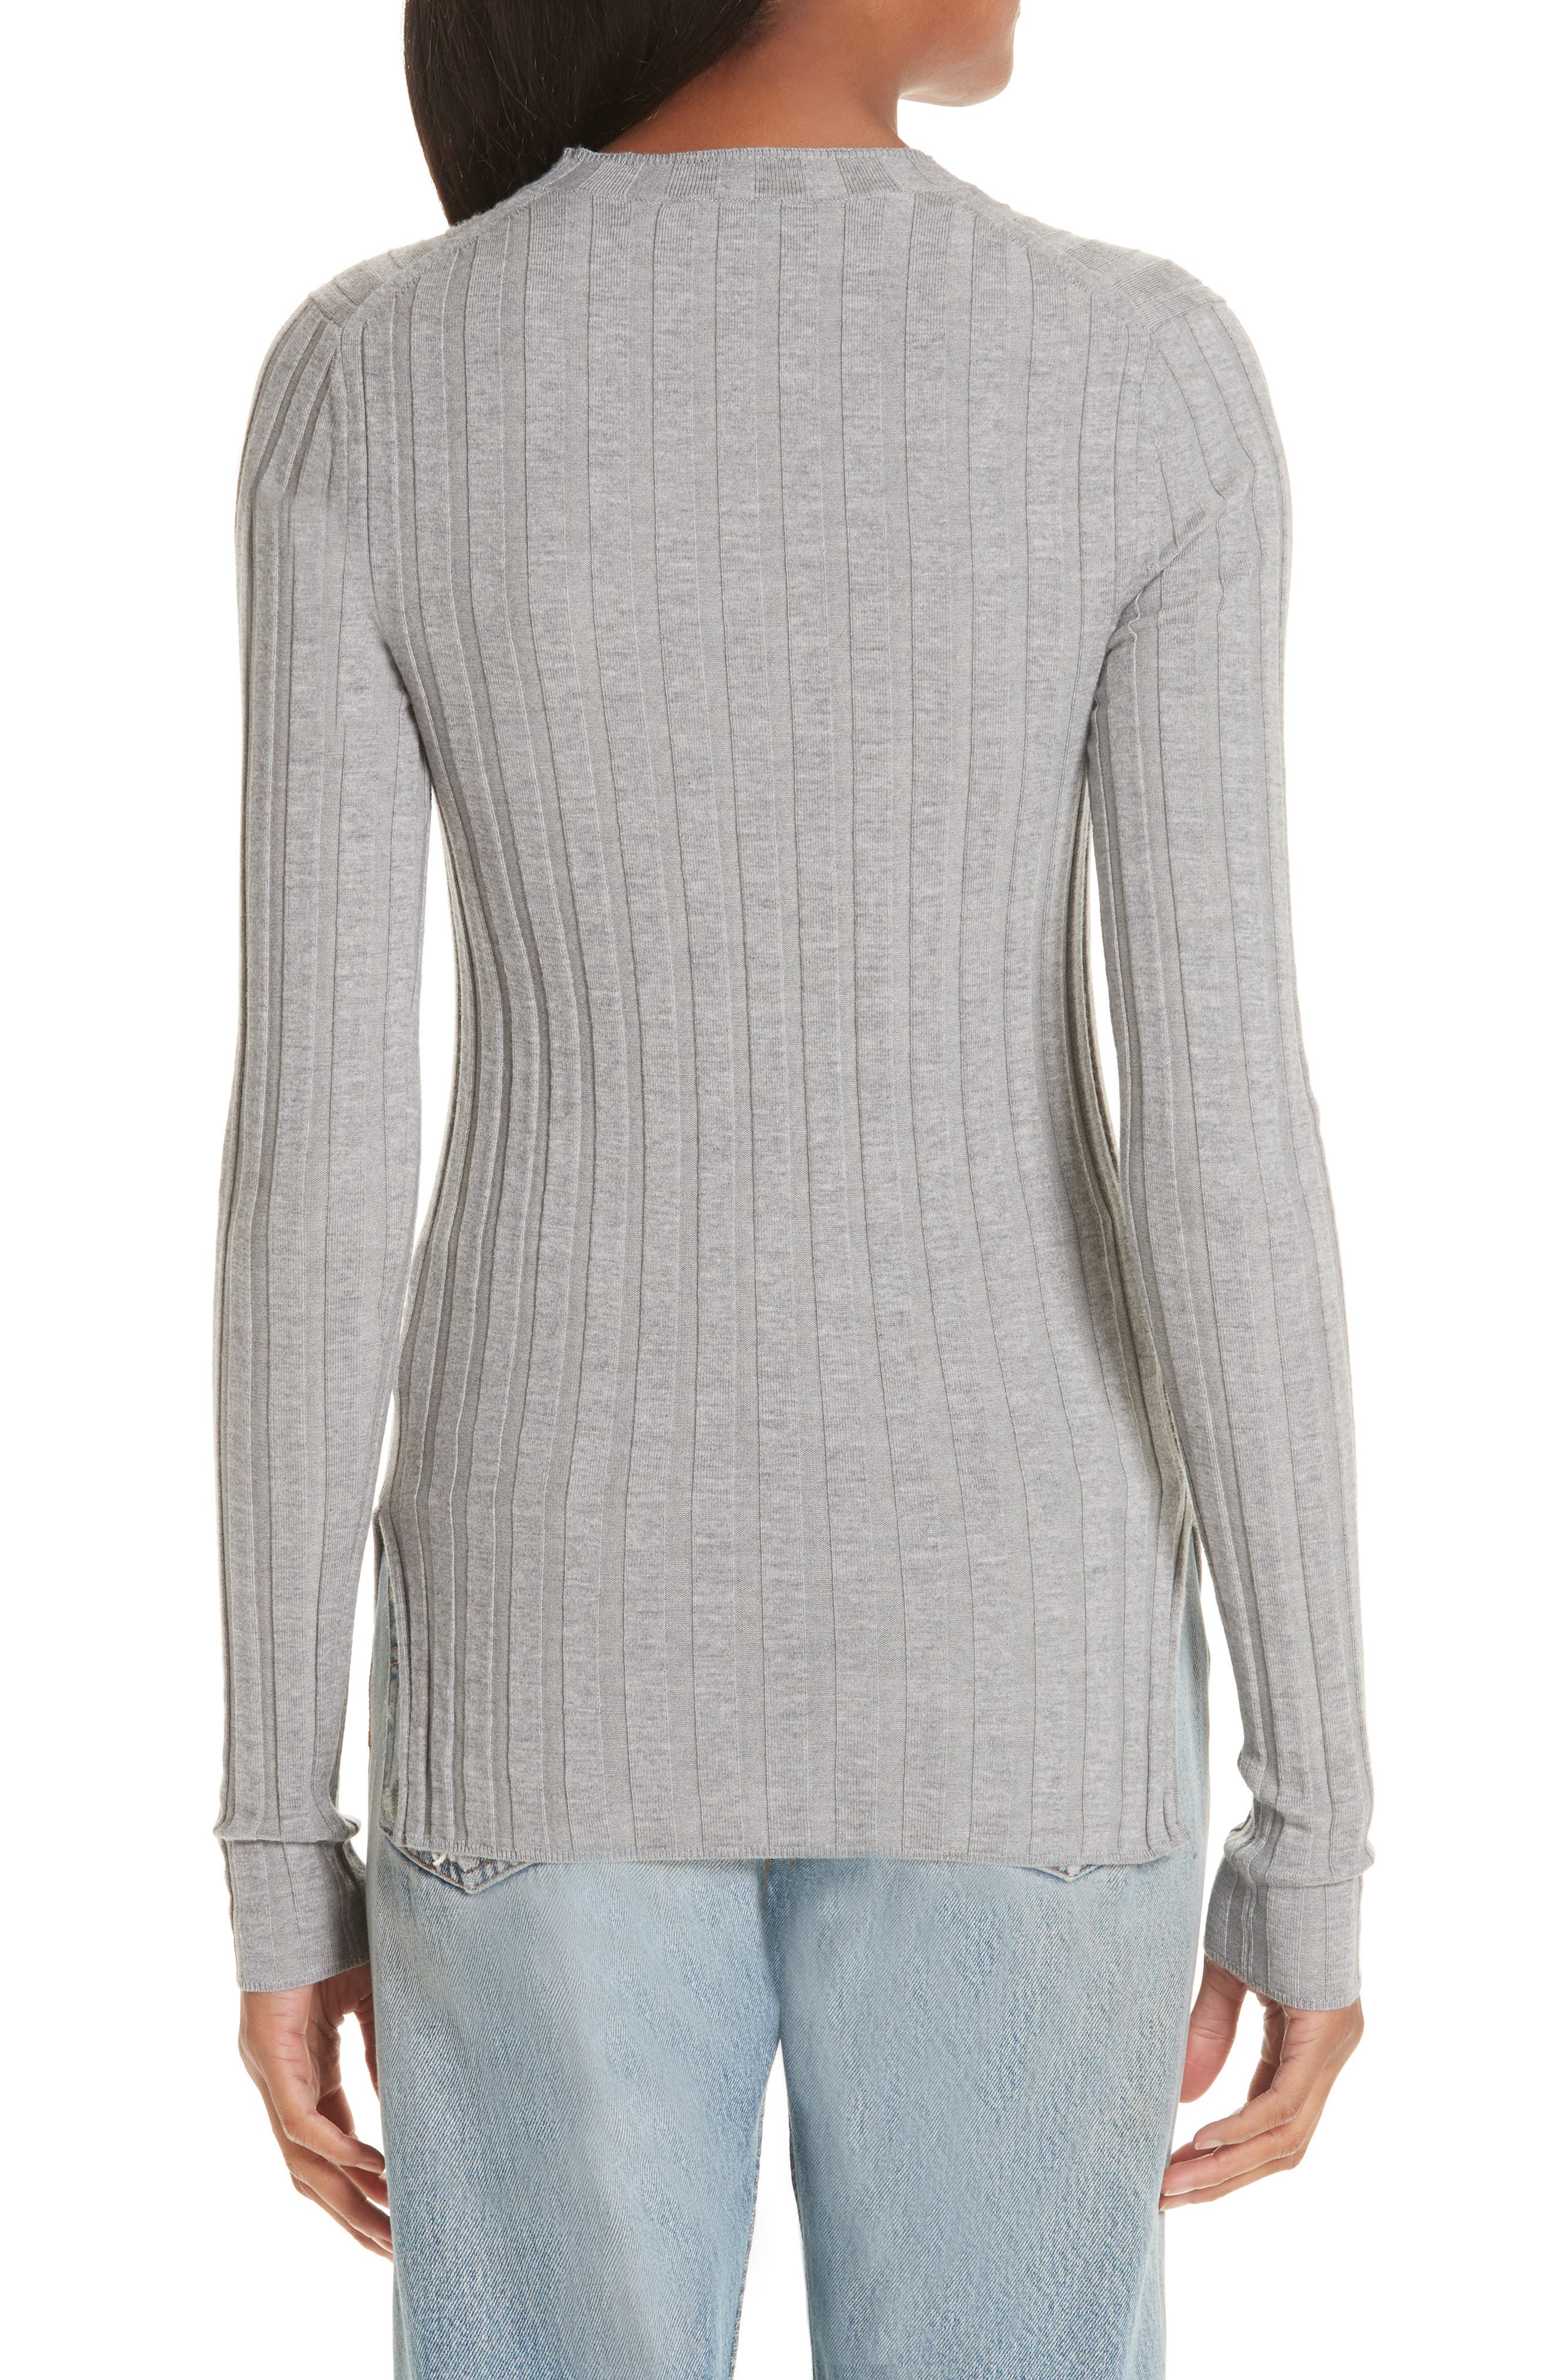 Carina Fitted Crewneck Sweater,                             Alternate thumbnail 2, color,                             SILVER GREY